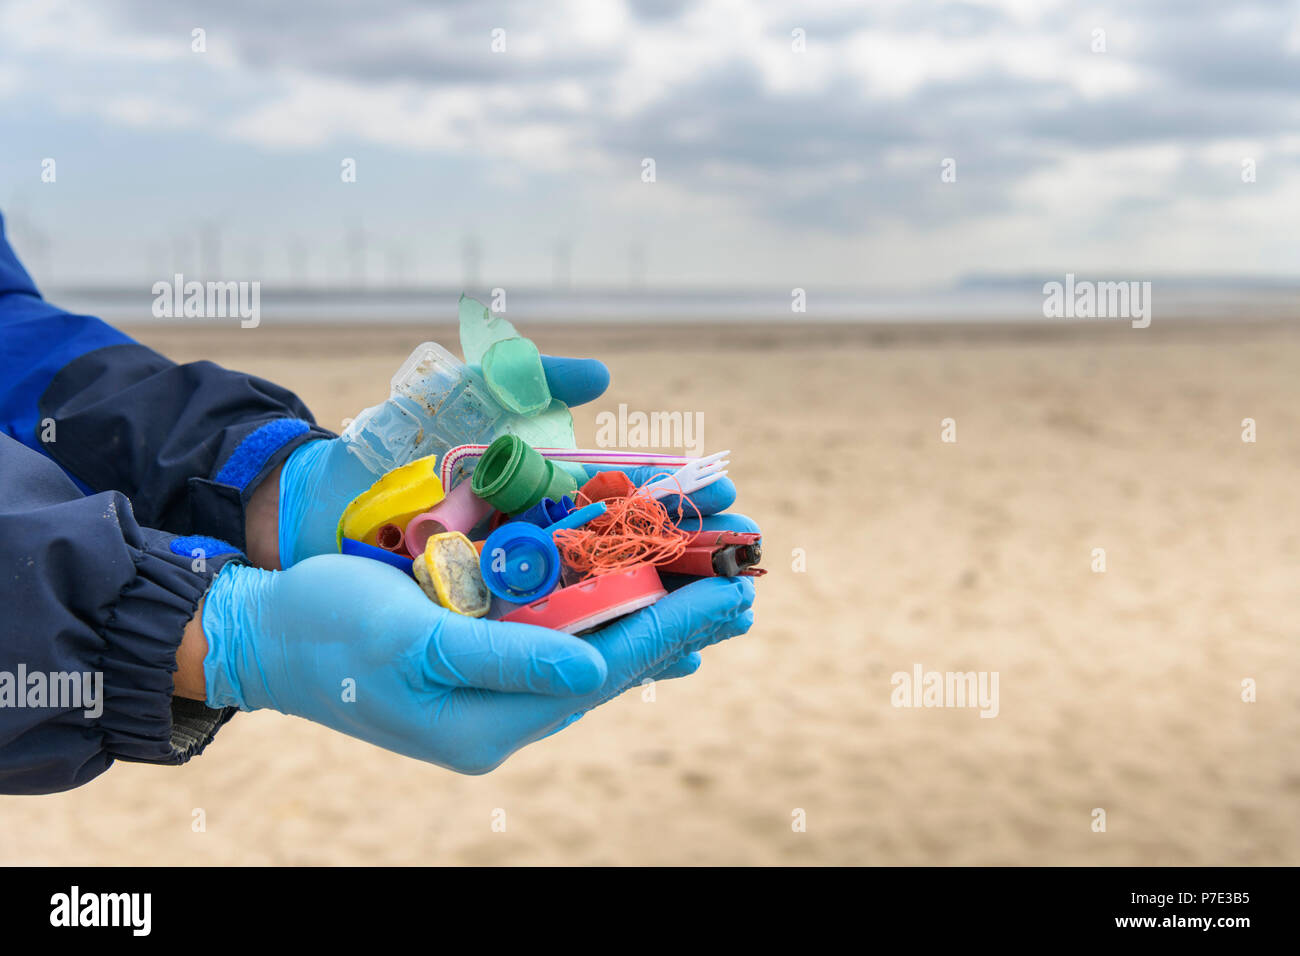 Man holding examples of plastic pollution collected on beach, North East England, UK - Stock Image